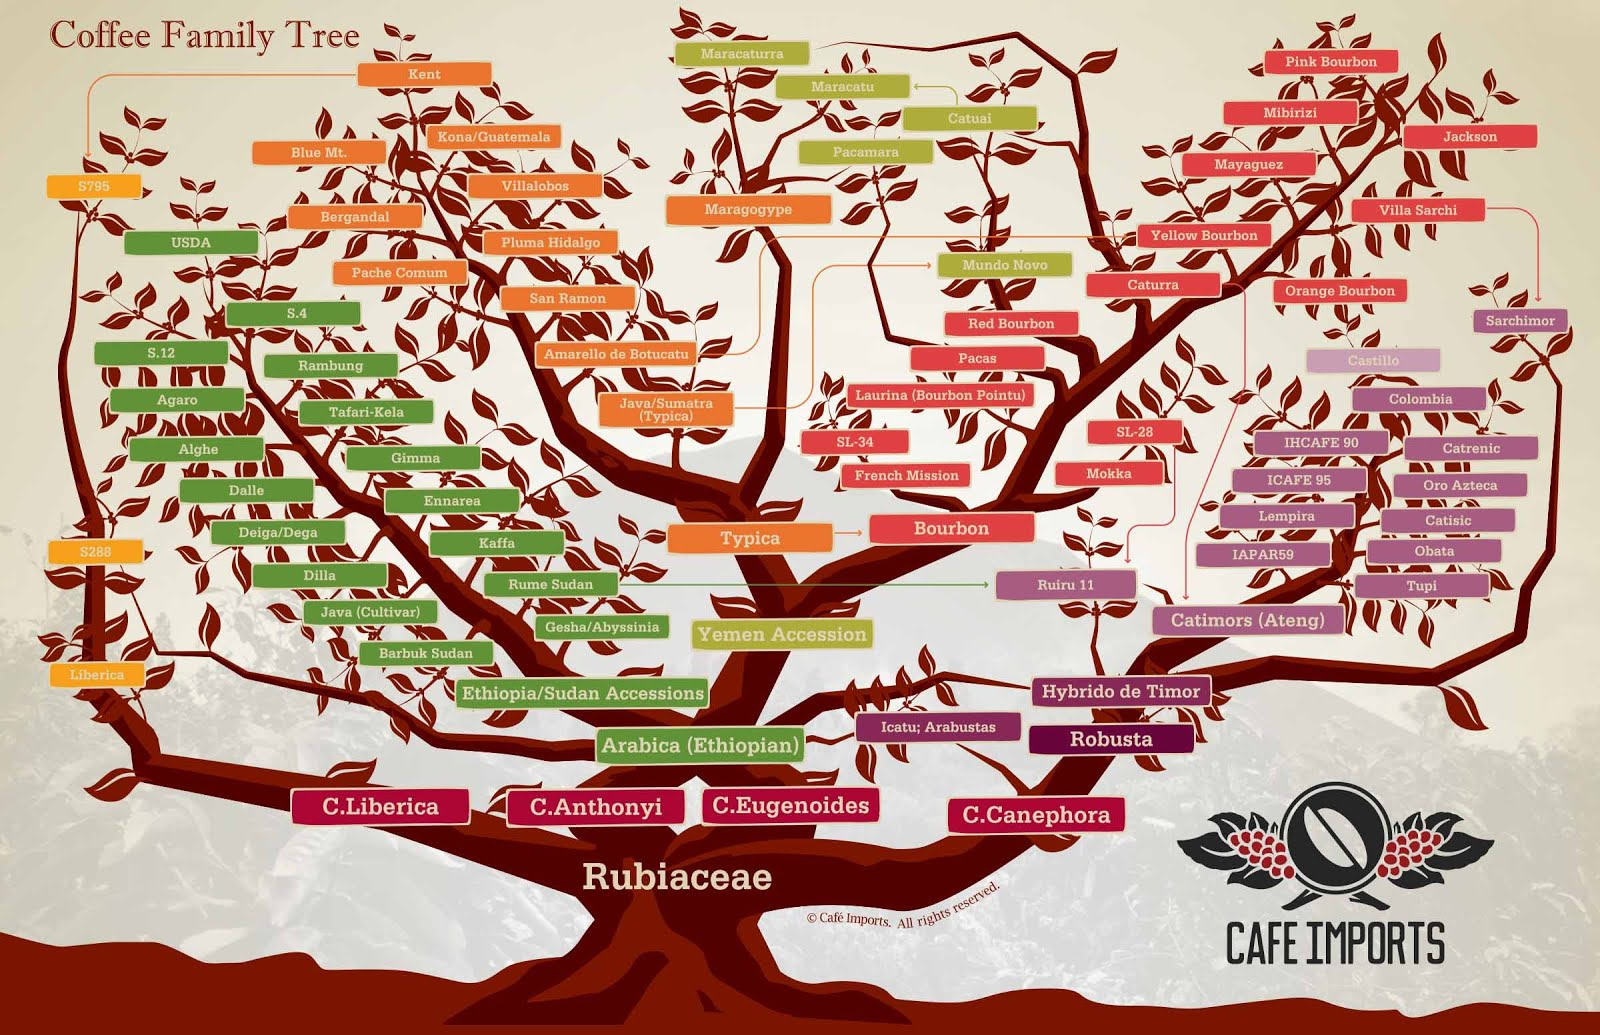 Coffee Blogers: The Anatomy Of A Coffee Tree